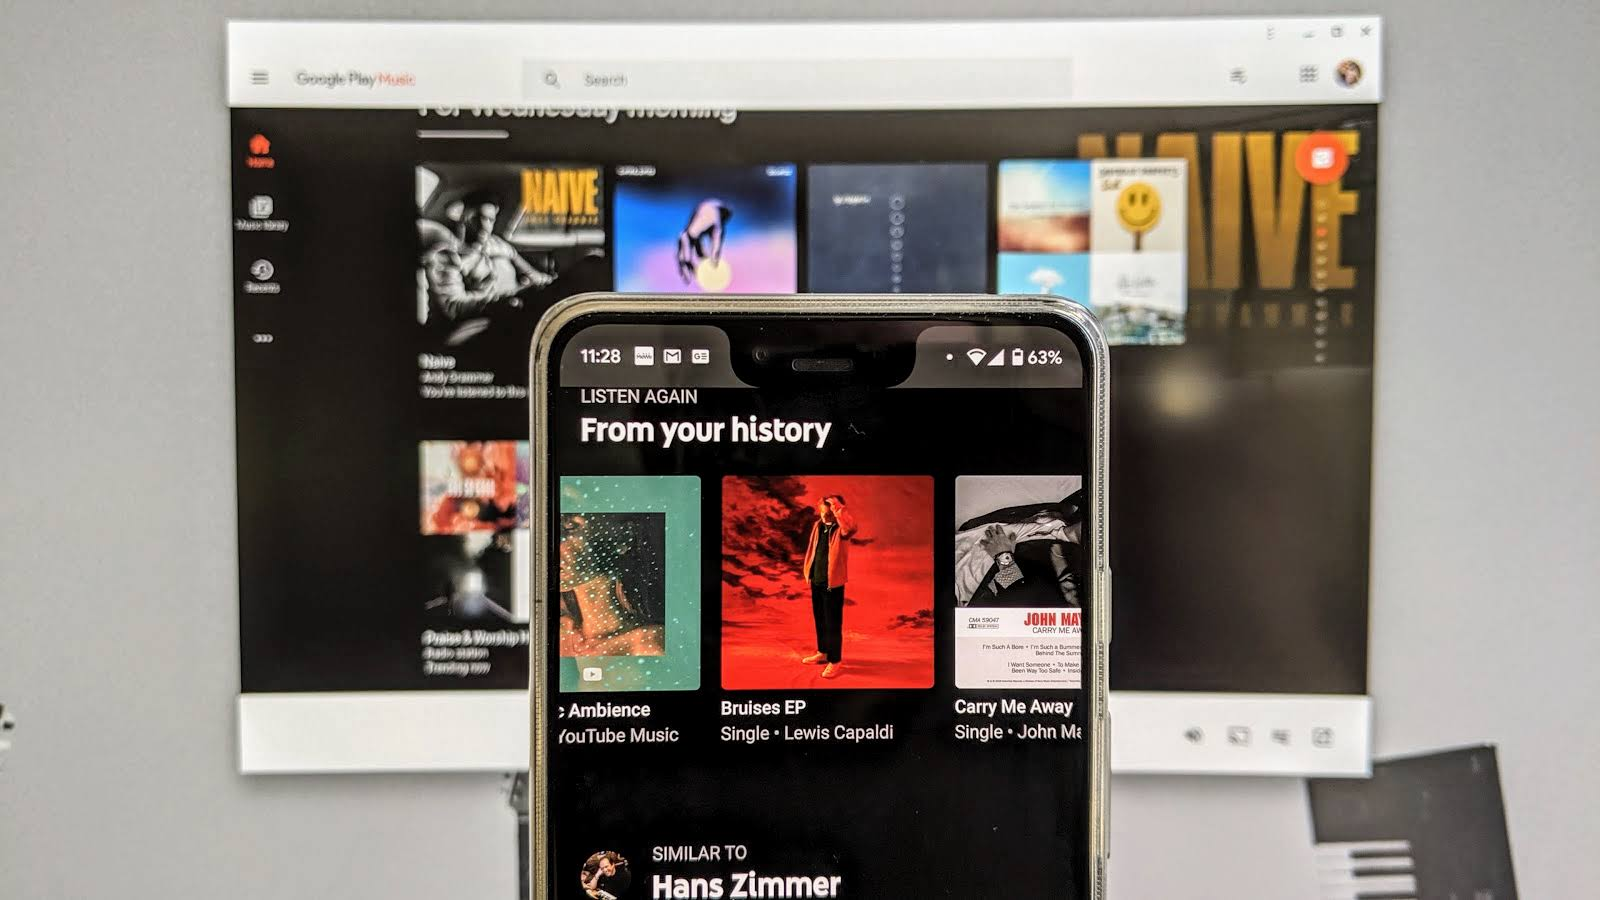 Time to get cozy with YouTube Music and start saying goodbye to Google Play Music